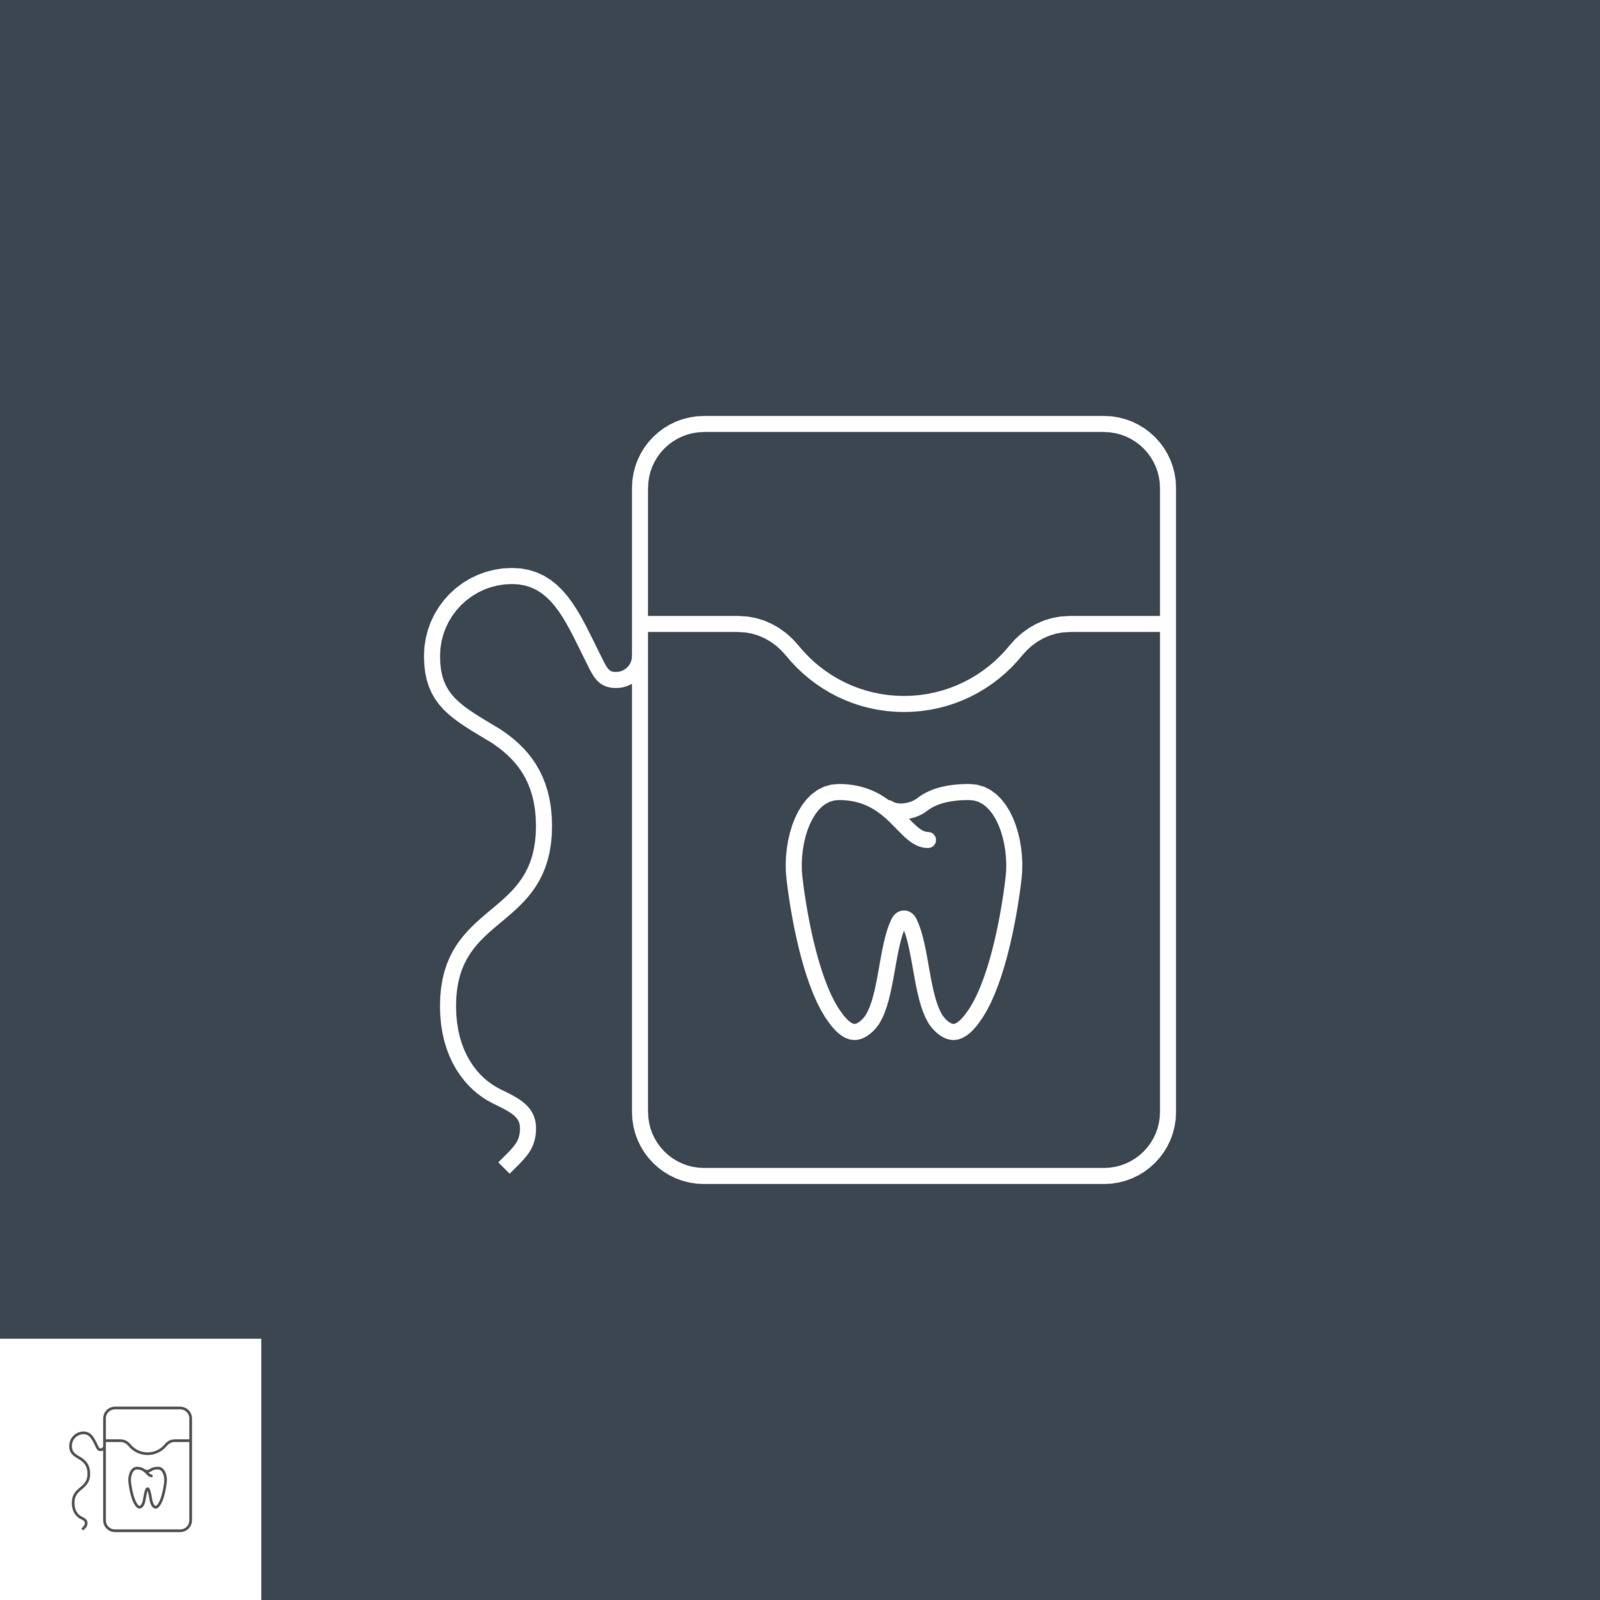 Dental Floss Line Icon. Dental Floss Line Related Vector Icon. Isolated on Black Background. Editable Stroke.